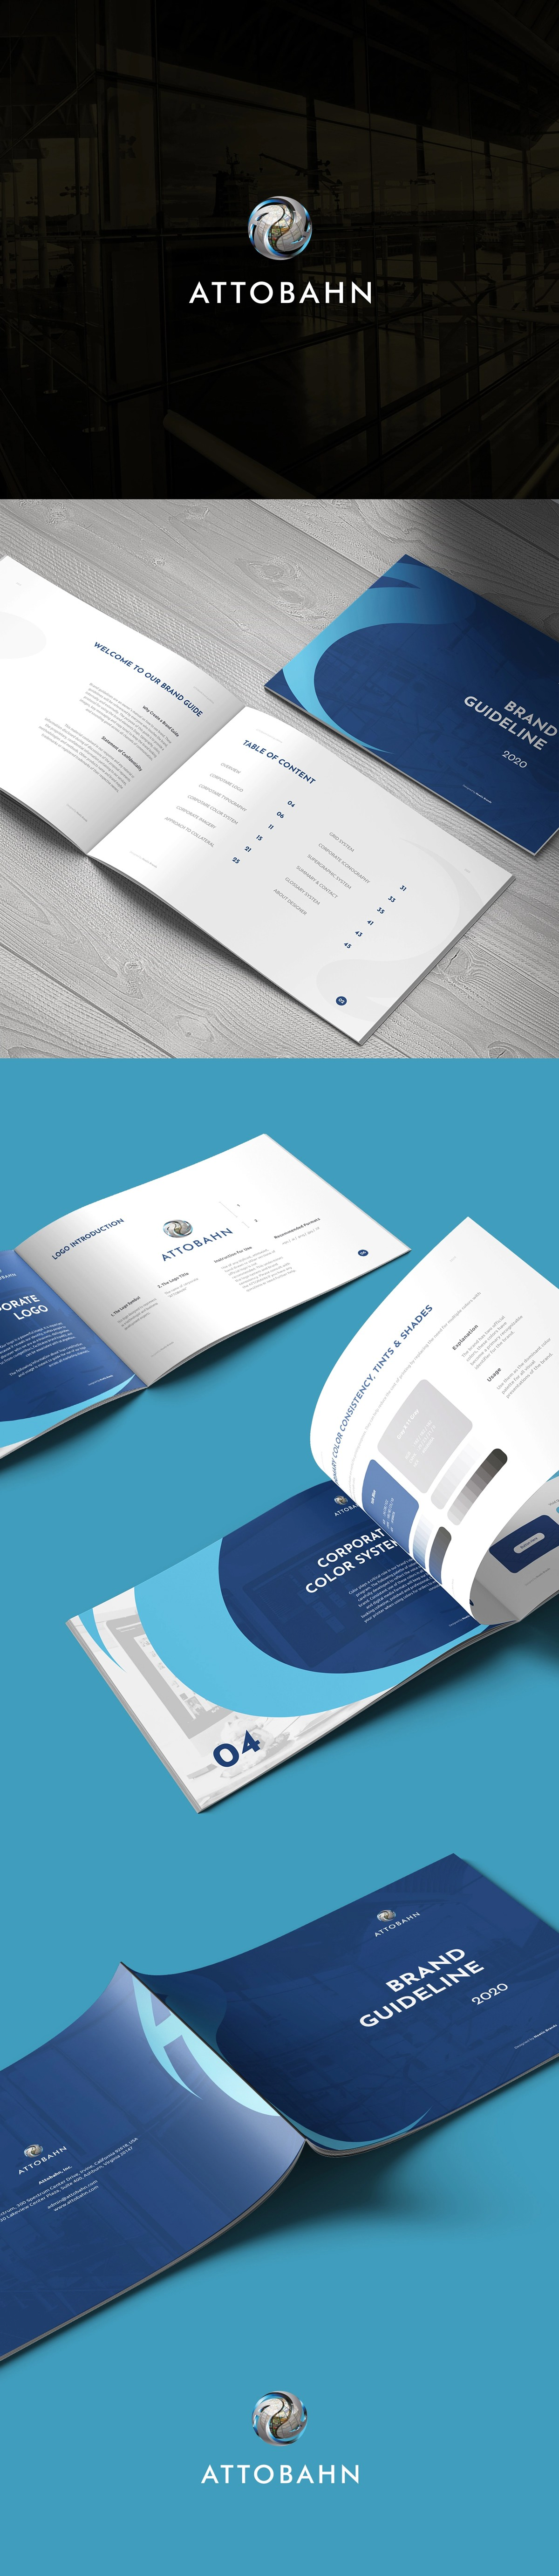 Attobahn Brand Standard / Guidelines Project